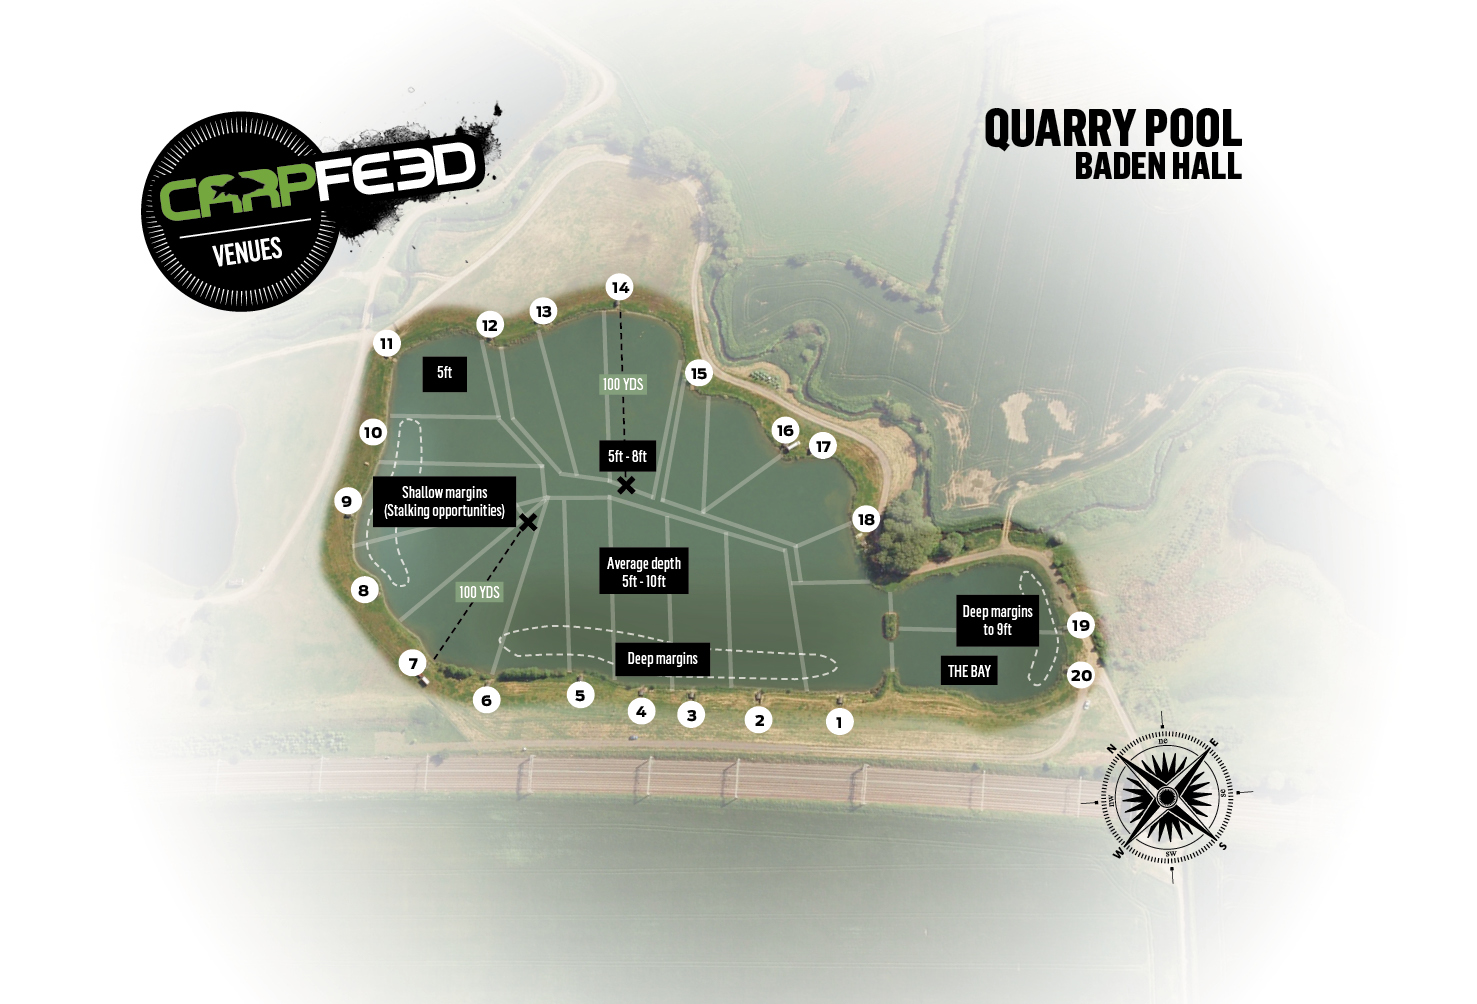 CLICK THE MAP FOR OUR FULL GUIDE TO QUARRY POOL